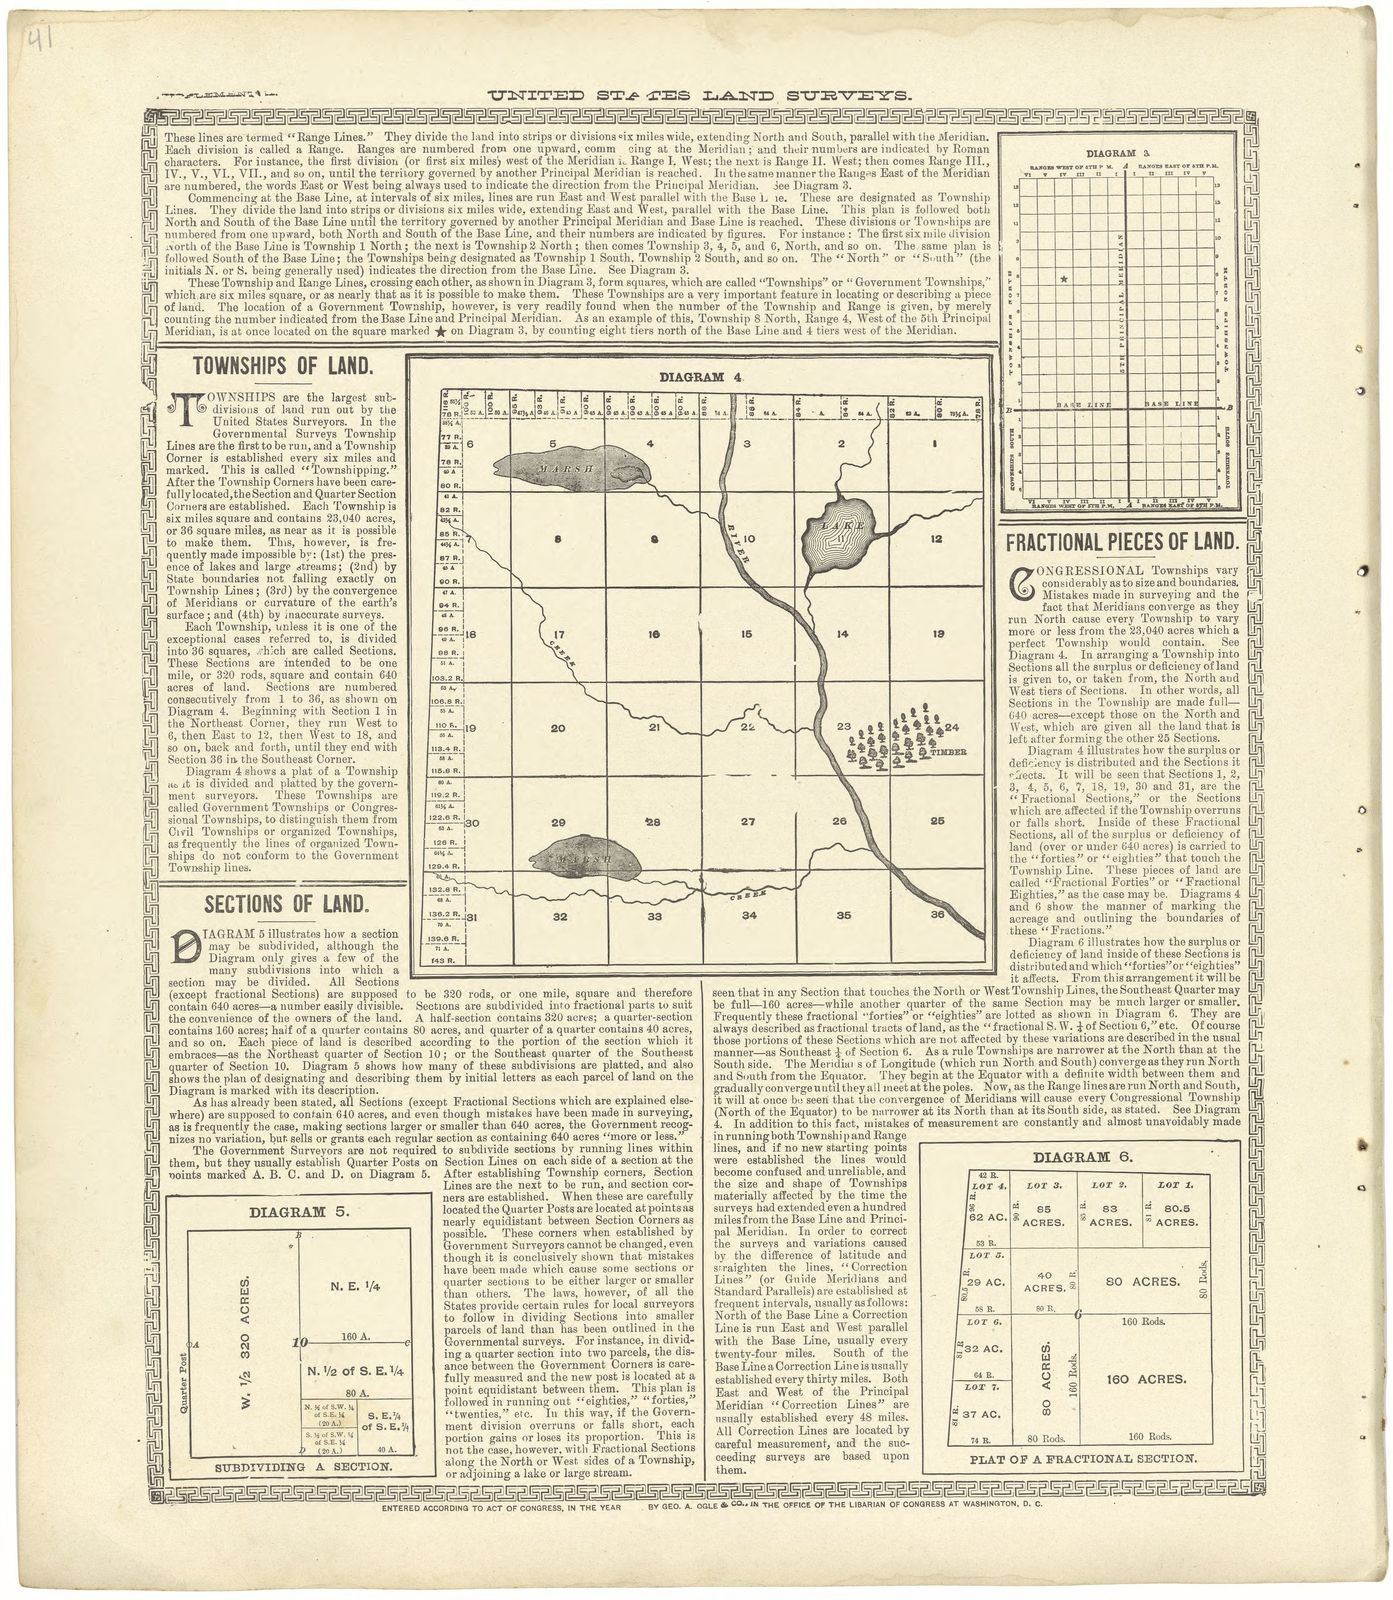 Standard atlas of Seward County, Nebraska : including a plat book of the villages, cities and townships of the county, map of the state, United States and world, patrons directory, reference business directory and departments devoted to general information, analysis of the system of U.S. land surveys, digest of the system of civil government, etc. etc. /